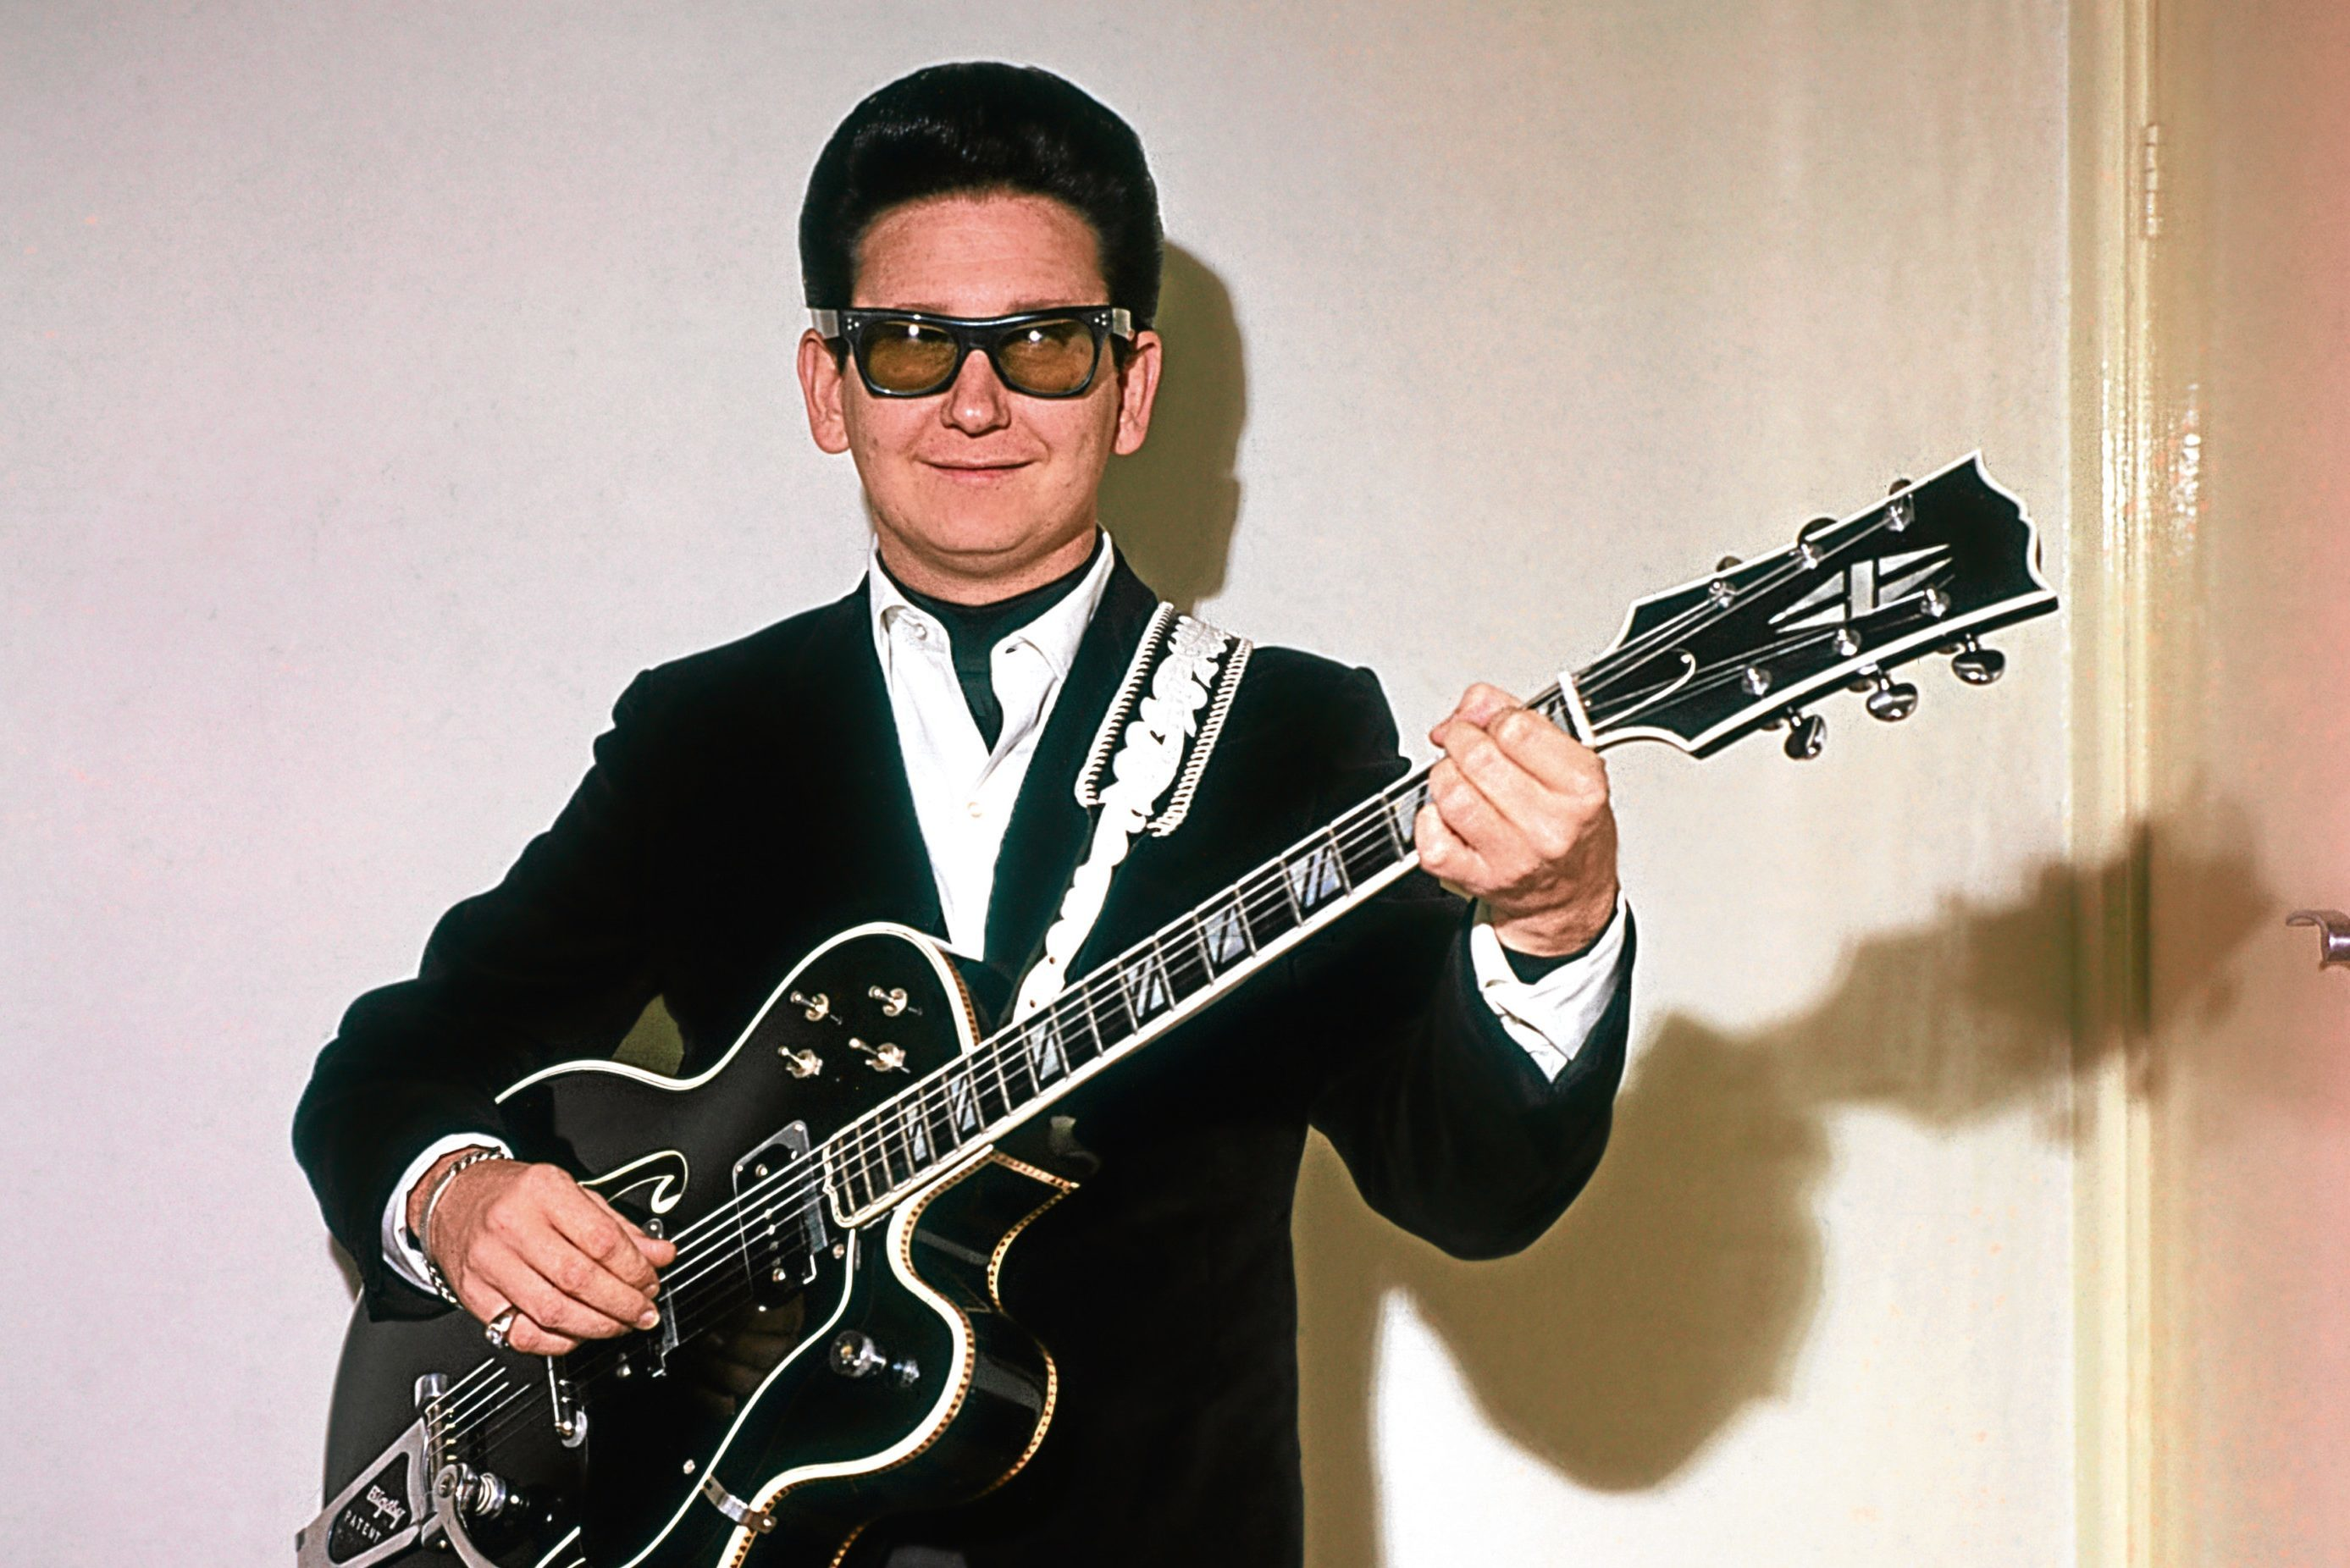 Roy Orbison, 1964 (Moore/Fox Photos/Getty Images)